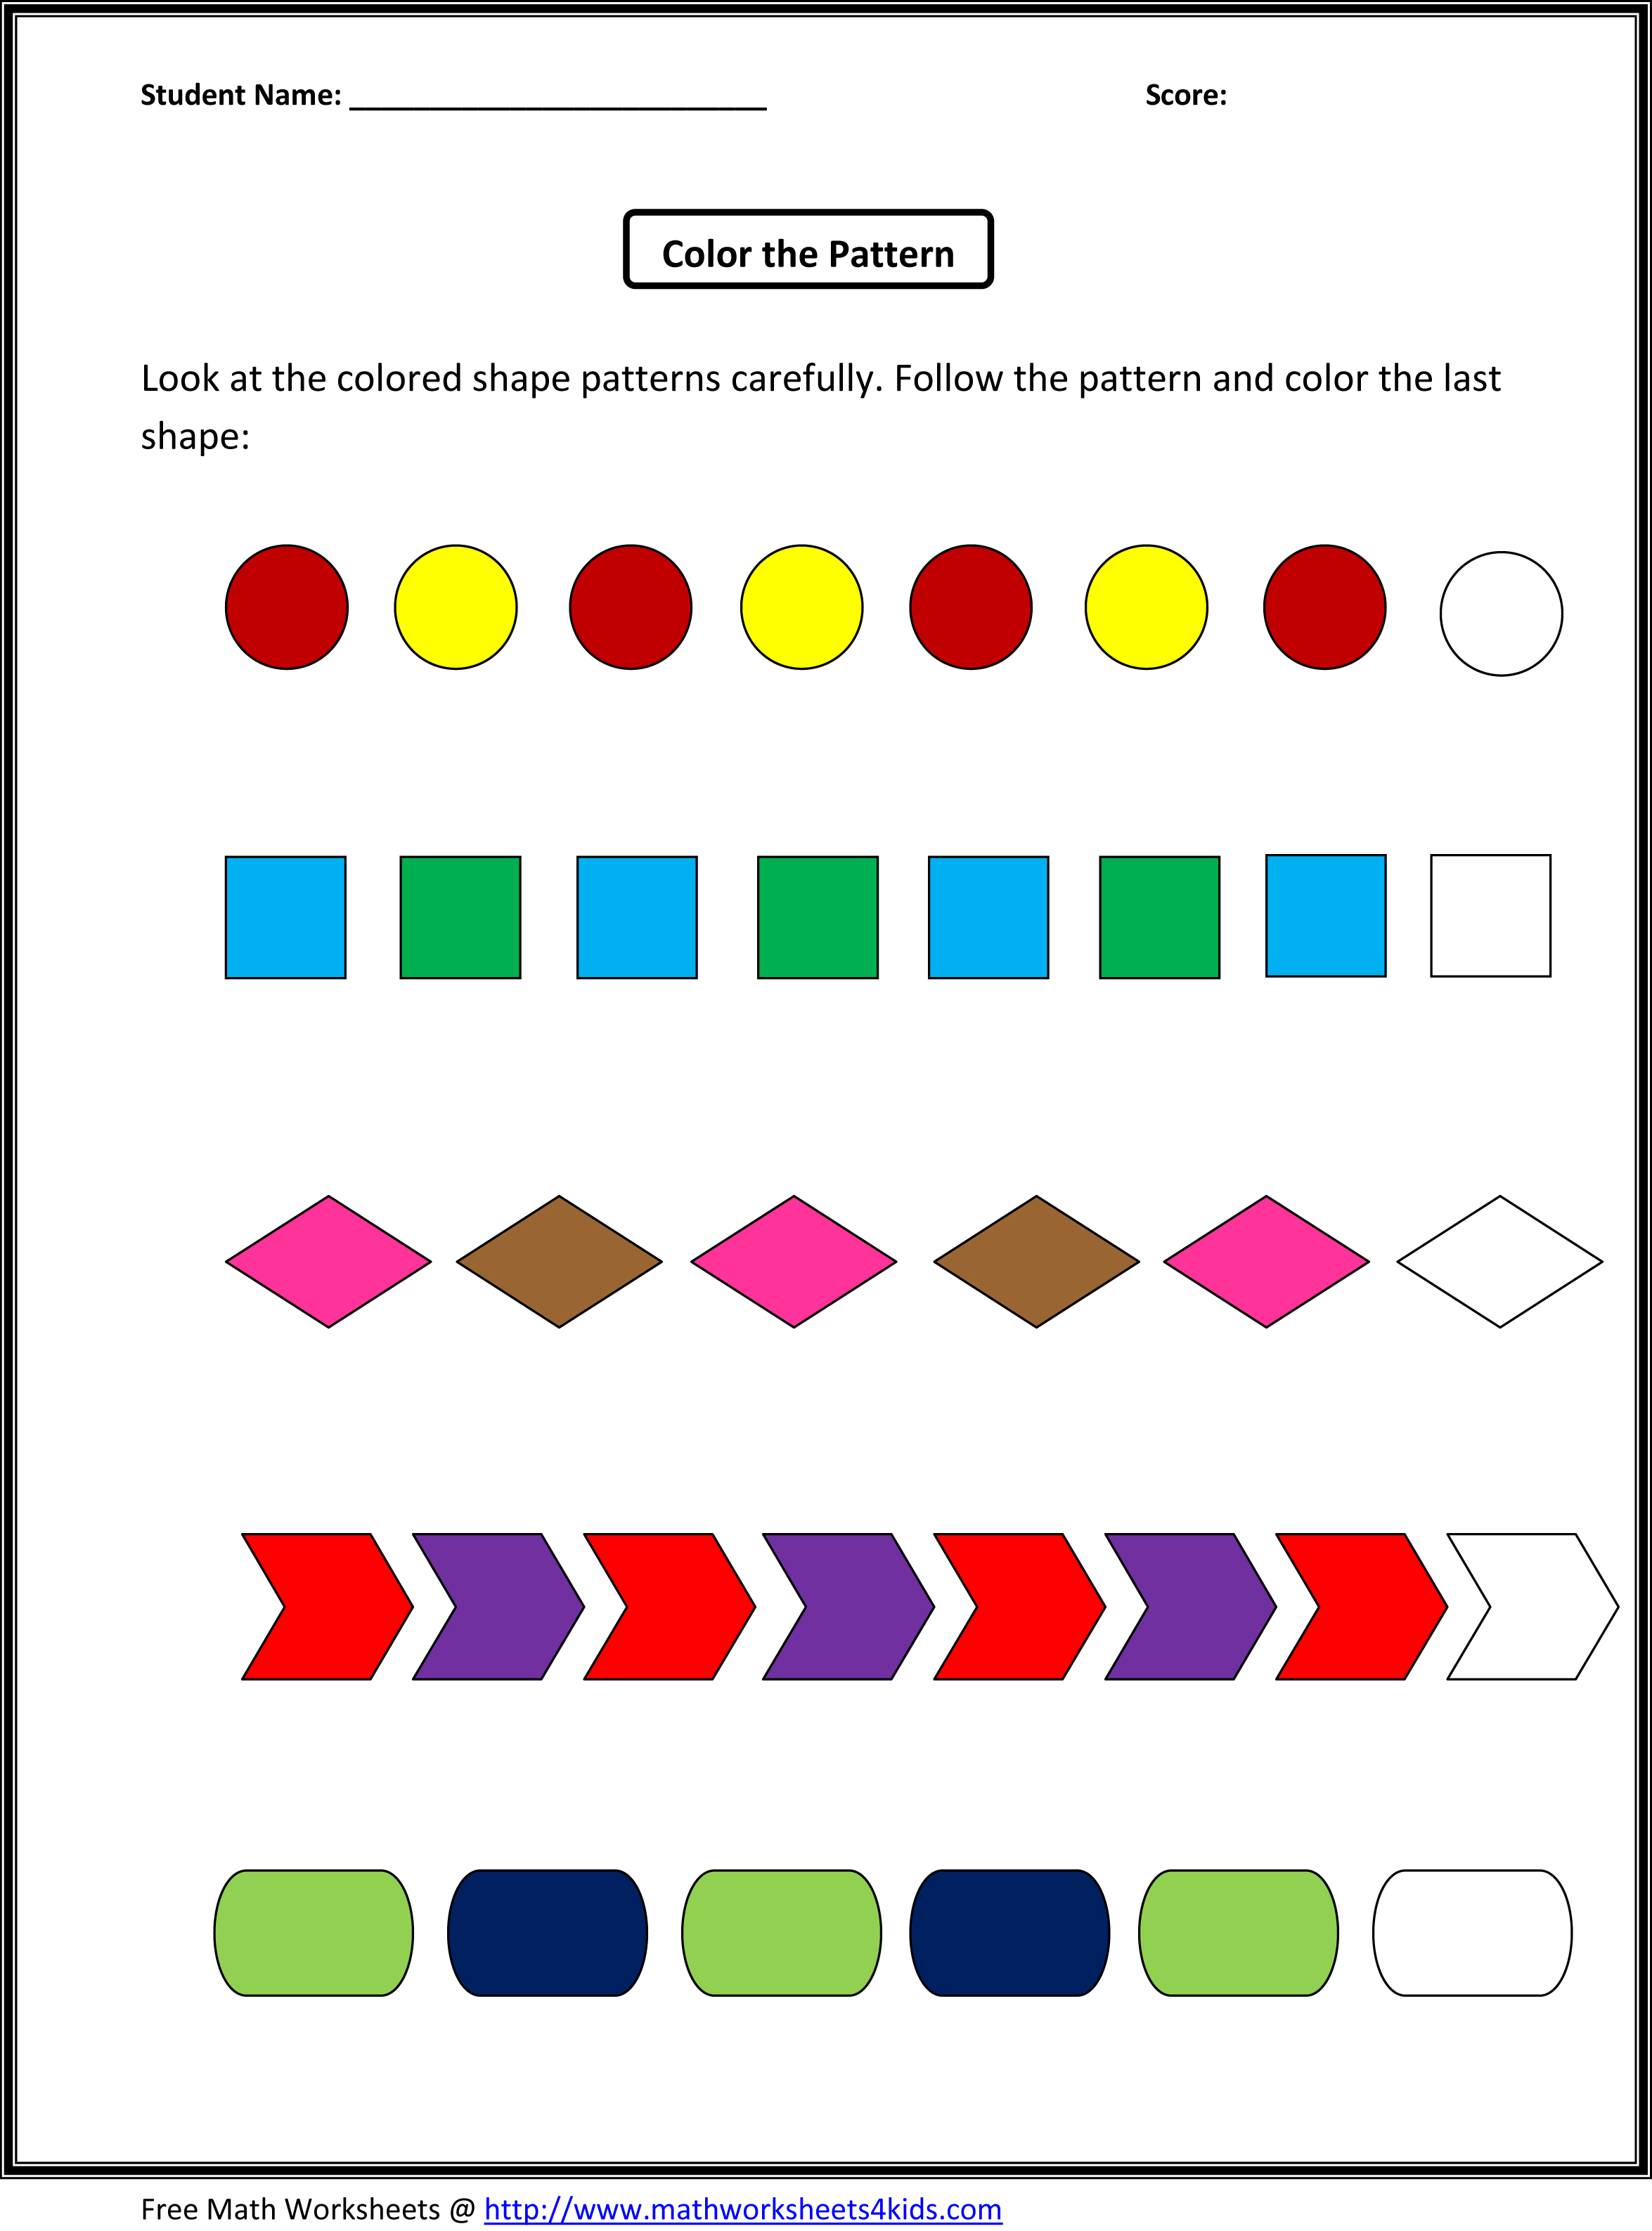 Worksheet Patterns Kindergarten patterns kindergarten scalien scalien